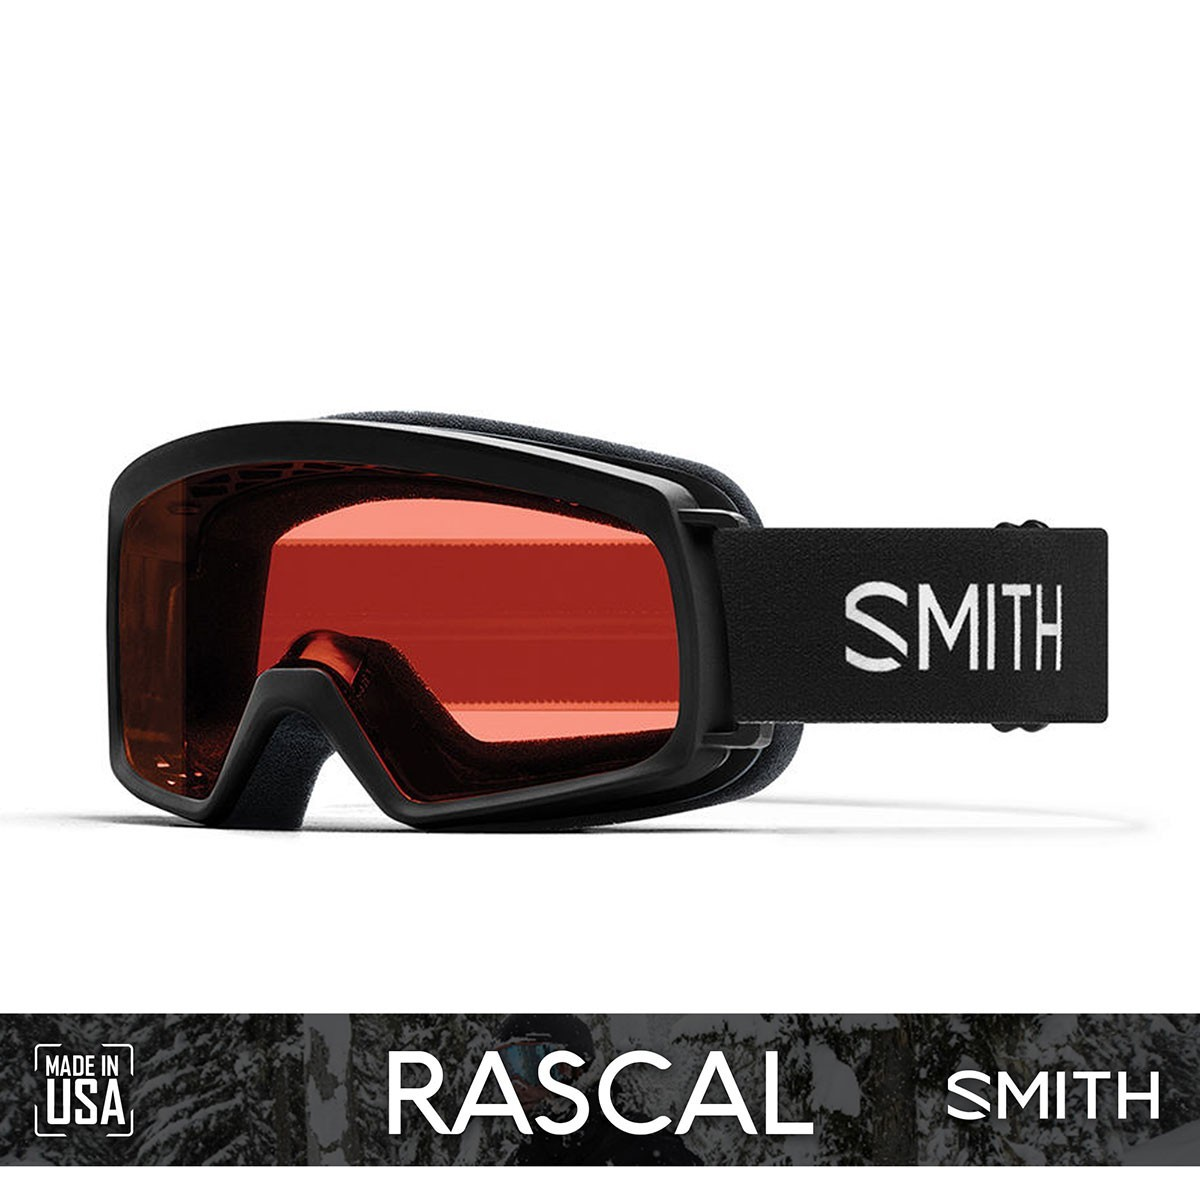 SMITH RASCAL Black | S2 RC36 ROSEC - Изображение - AQUAMATRIX